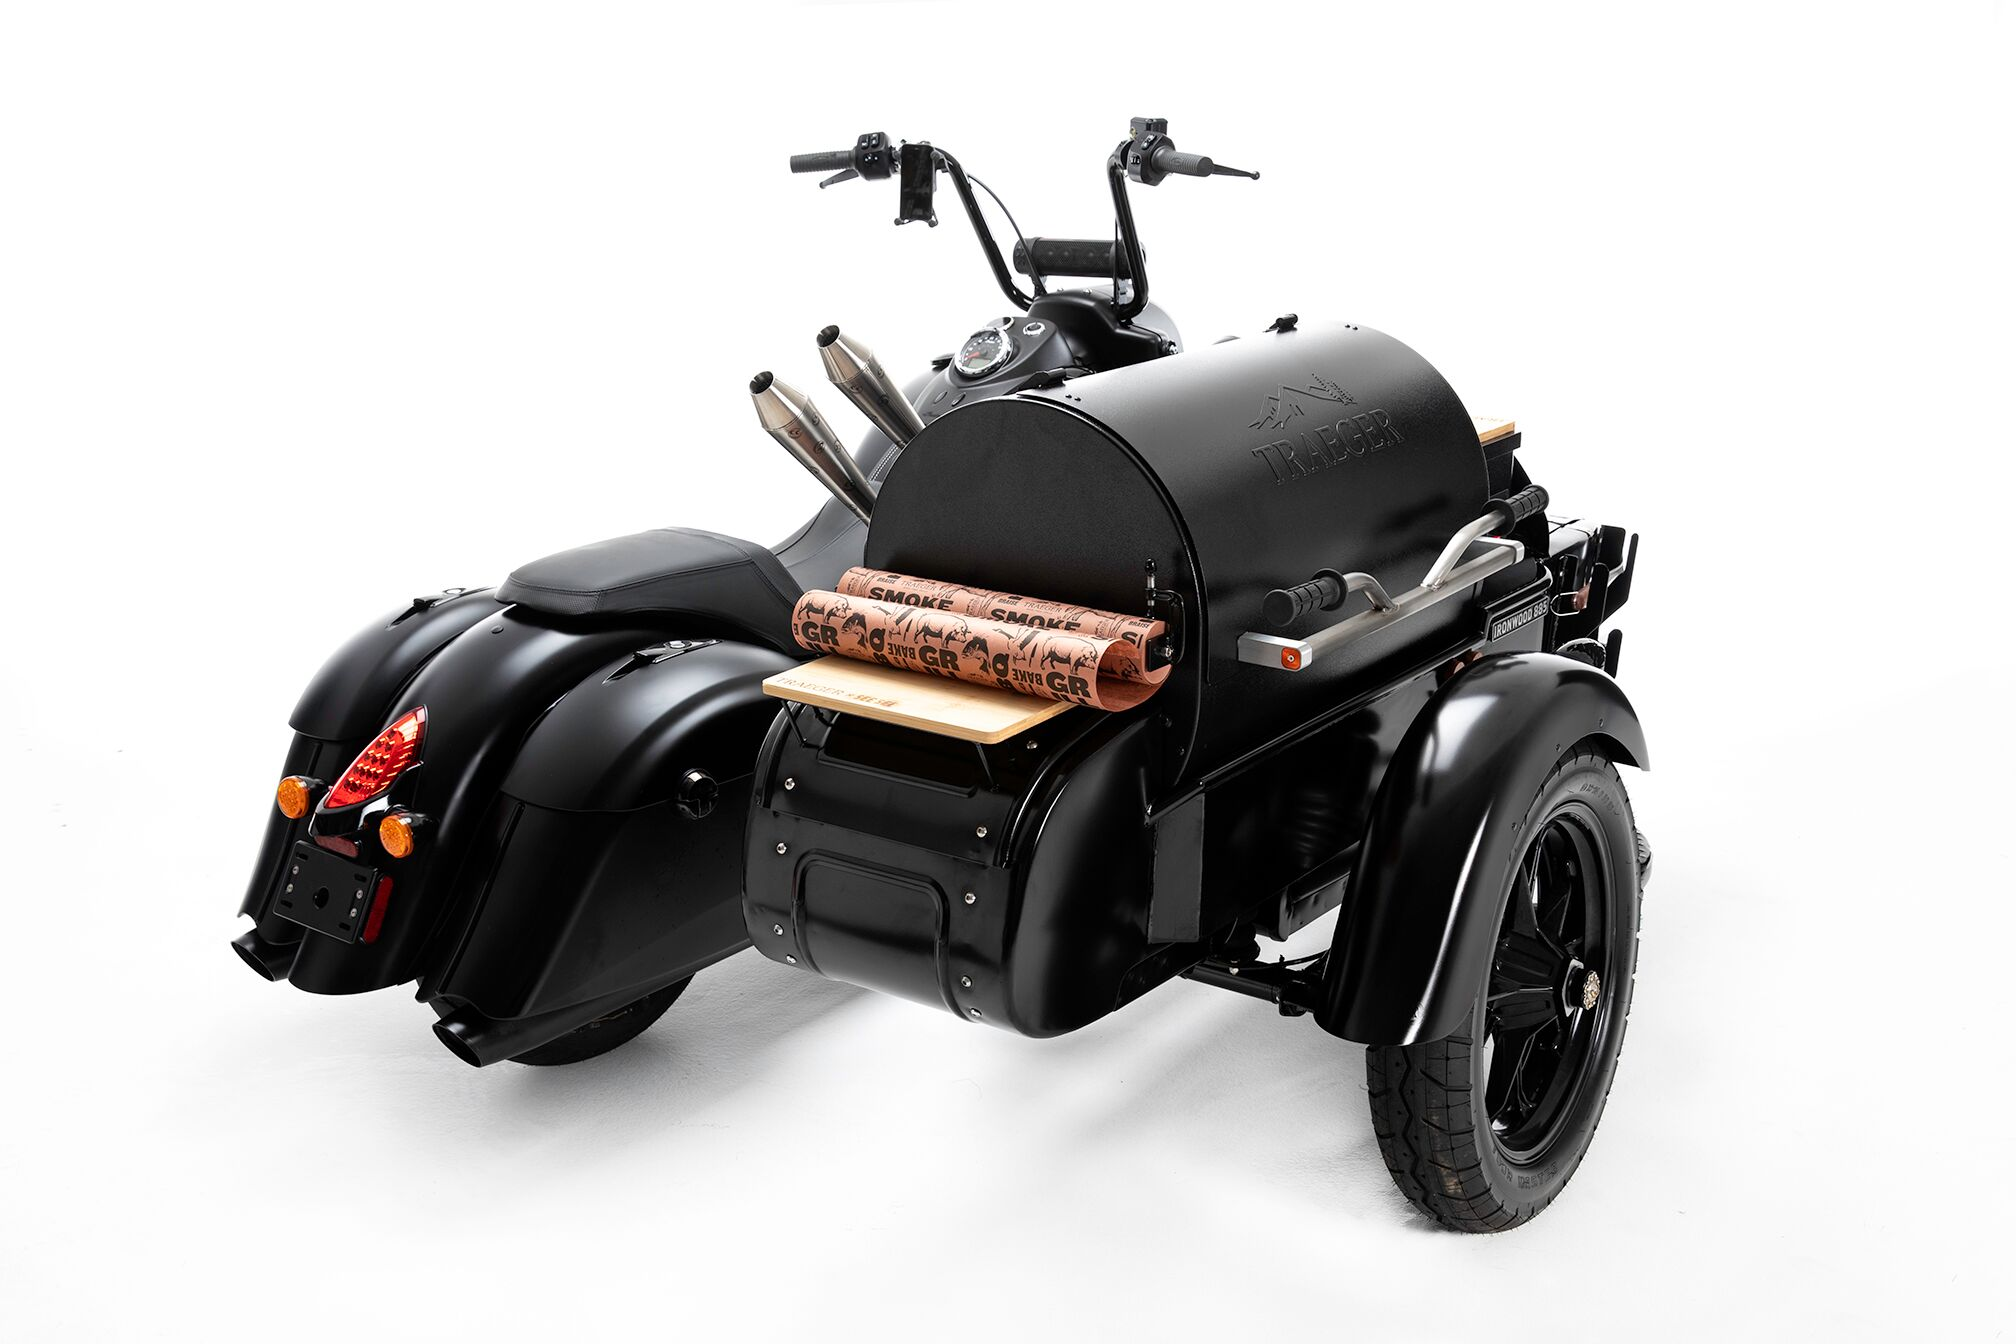 Indian Motorcycle and Traeger Wood-Fired Grills